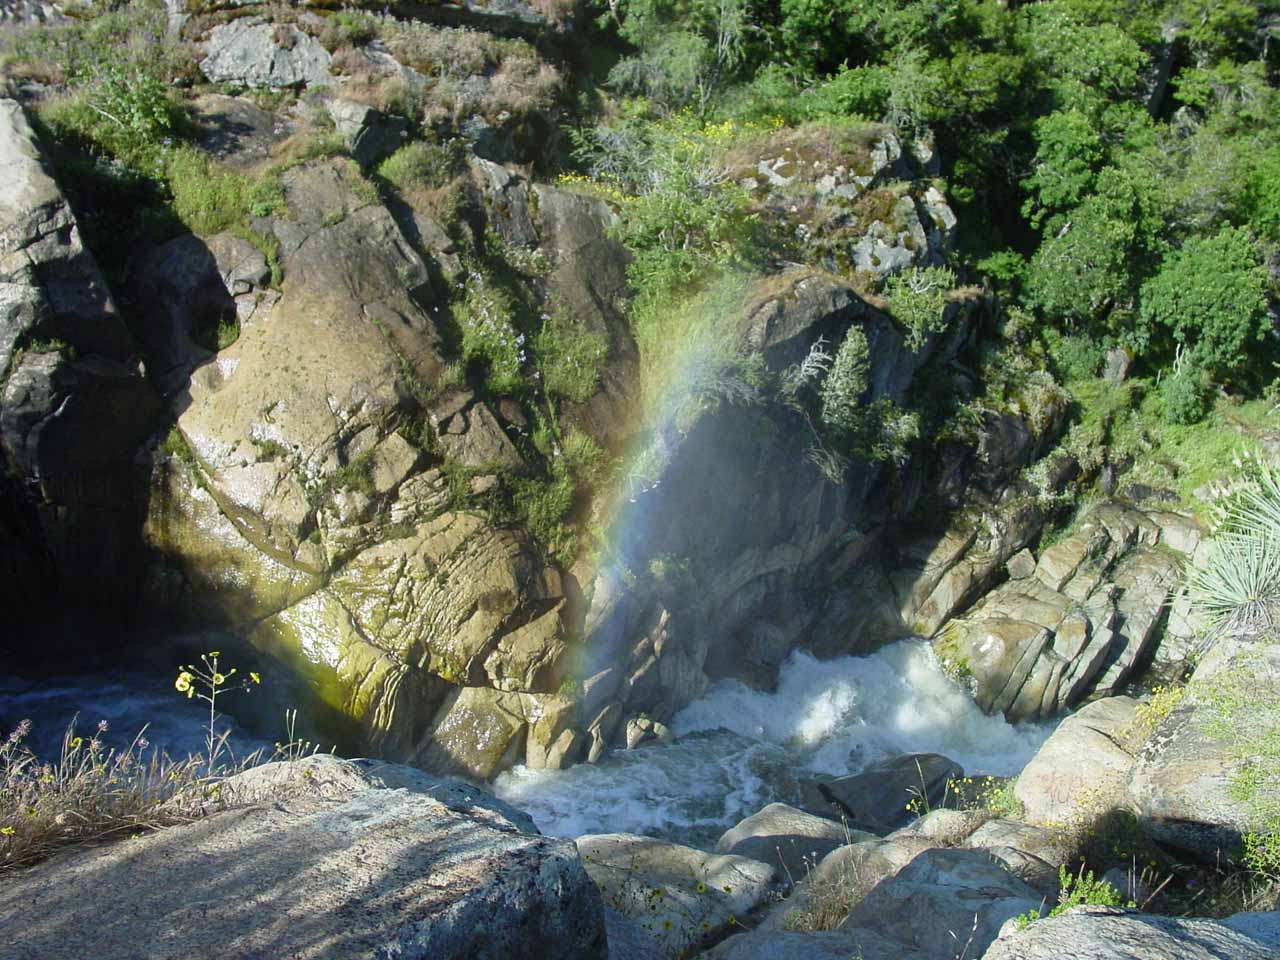 Looking downstream where a rainbow showed up in the Middle Fork Tule River Falls' mist